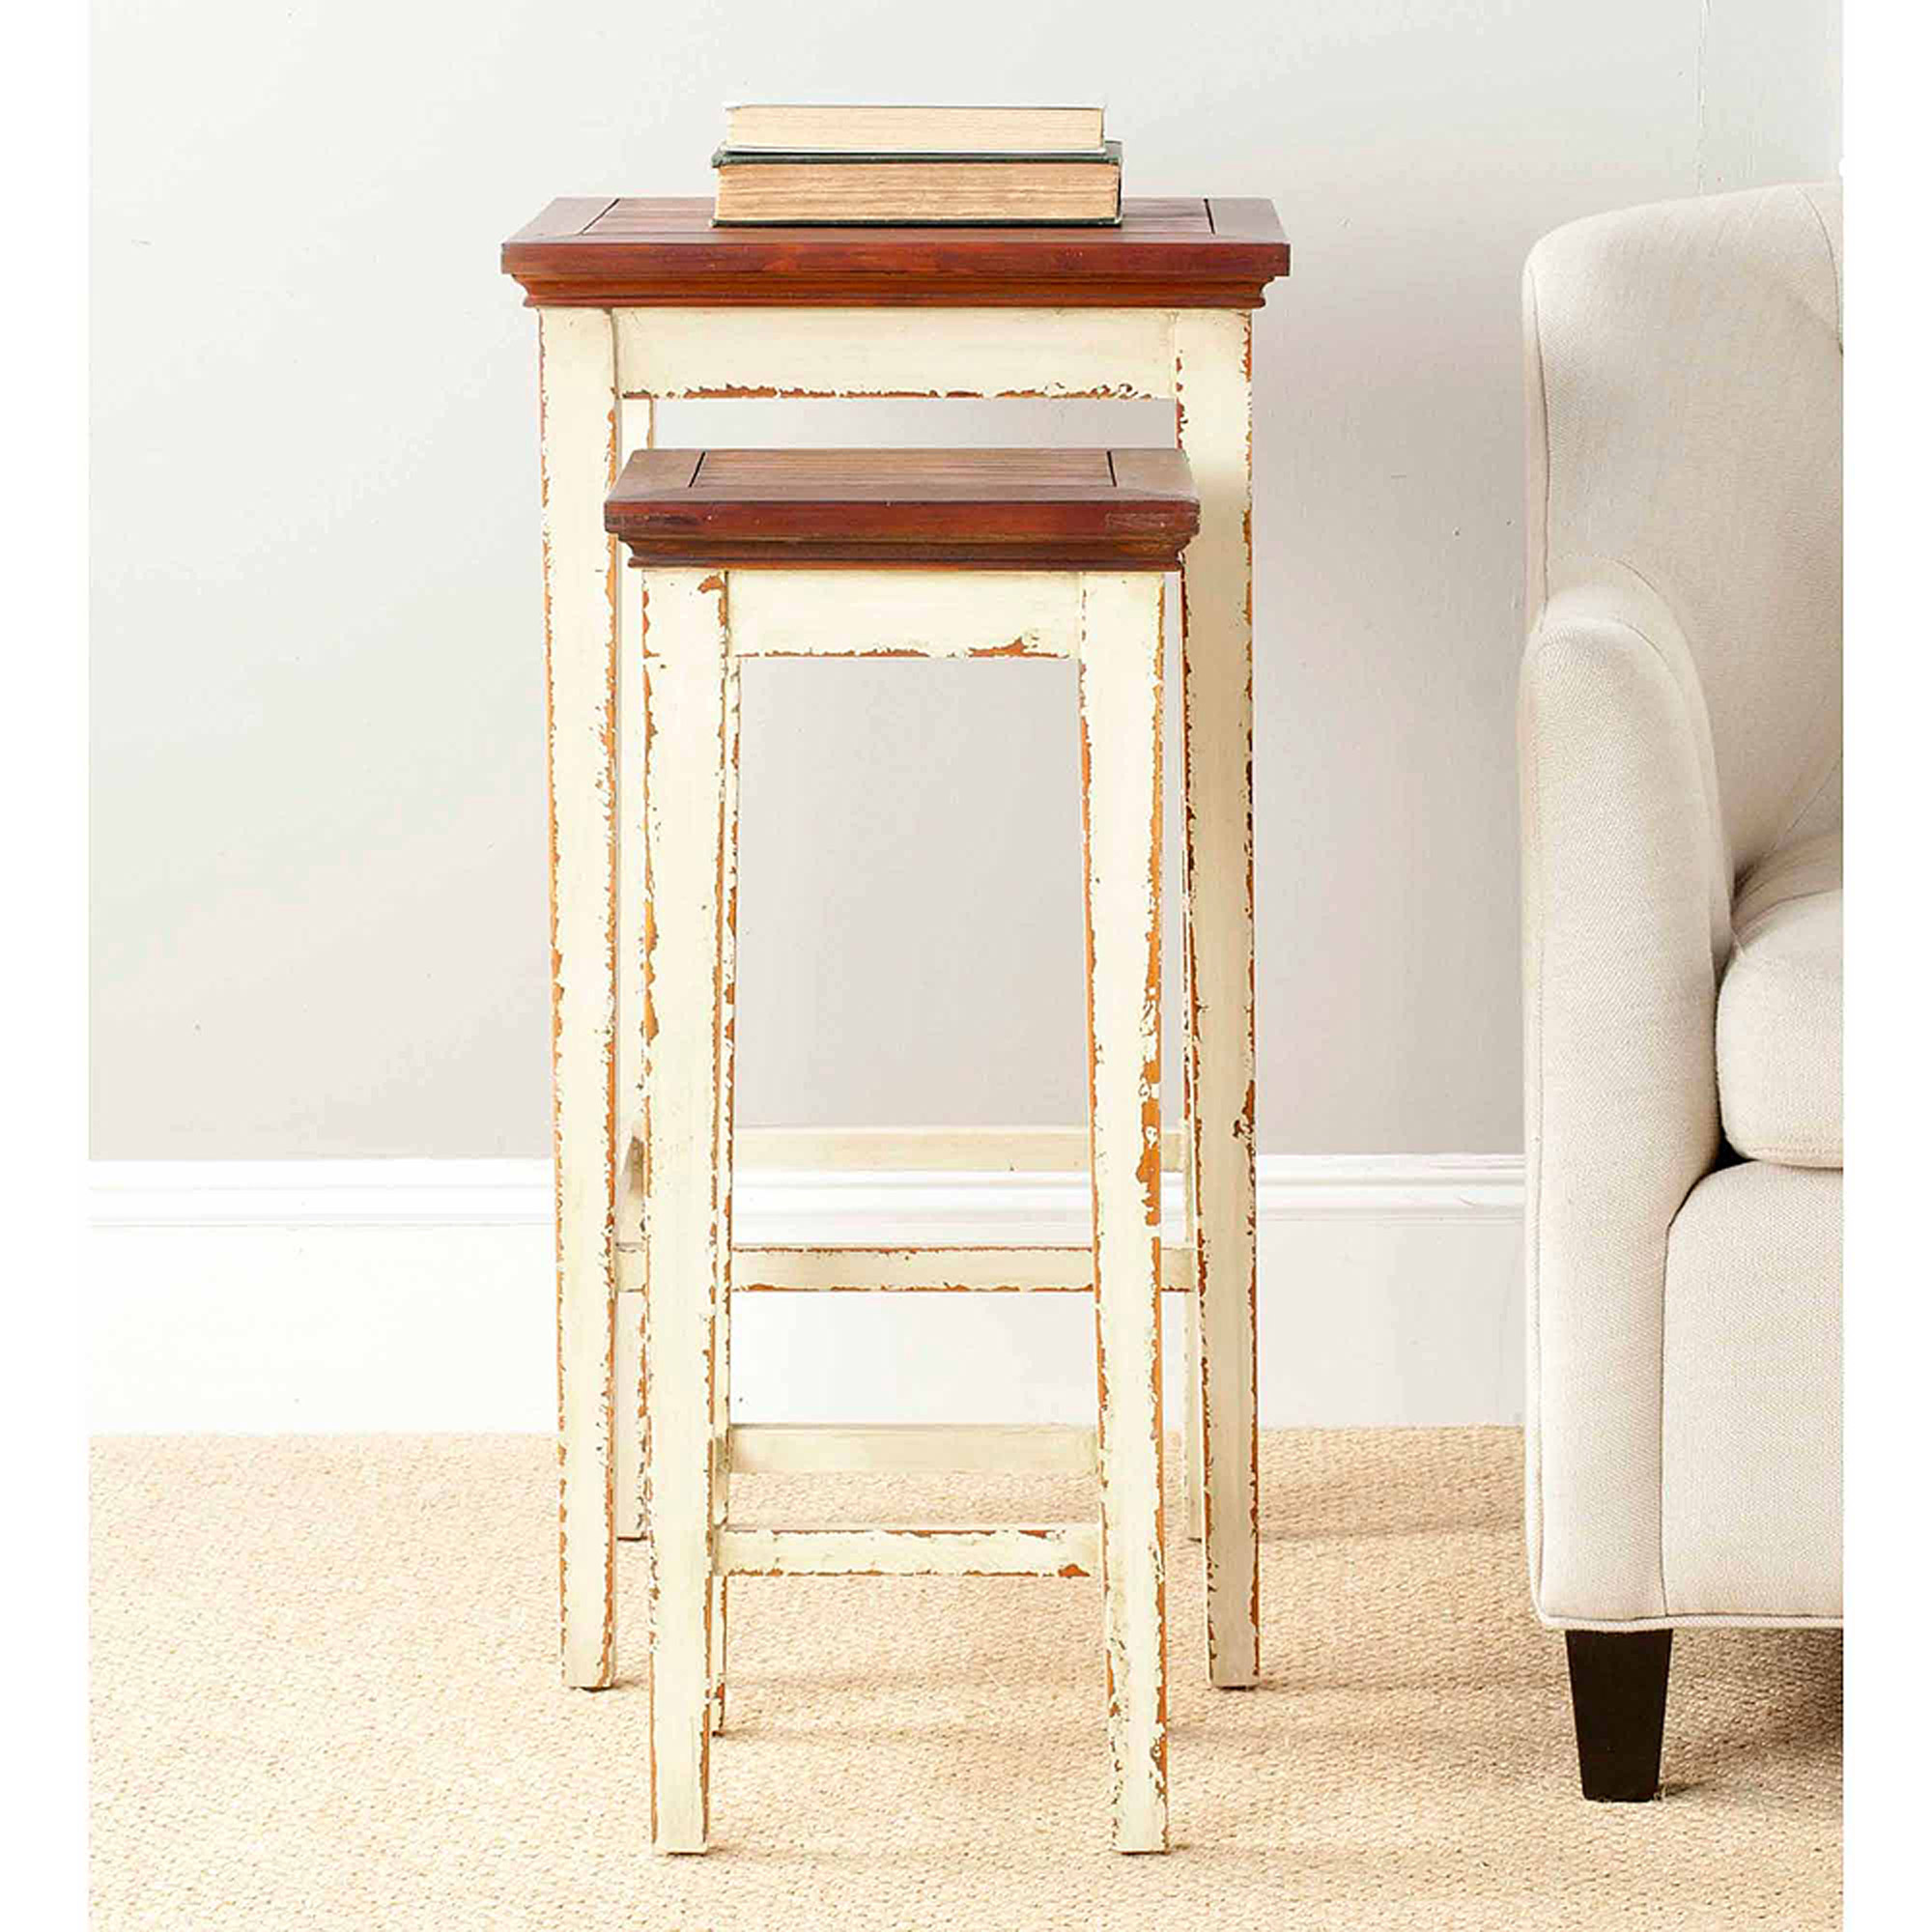 Safavieh Lynne Nesting Tables, White and Brown